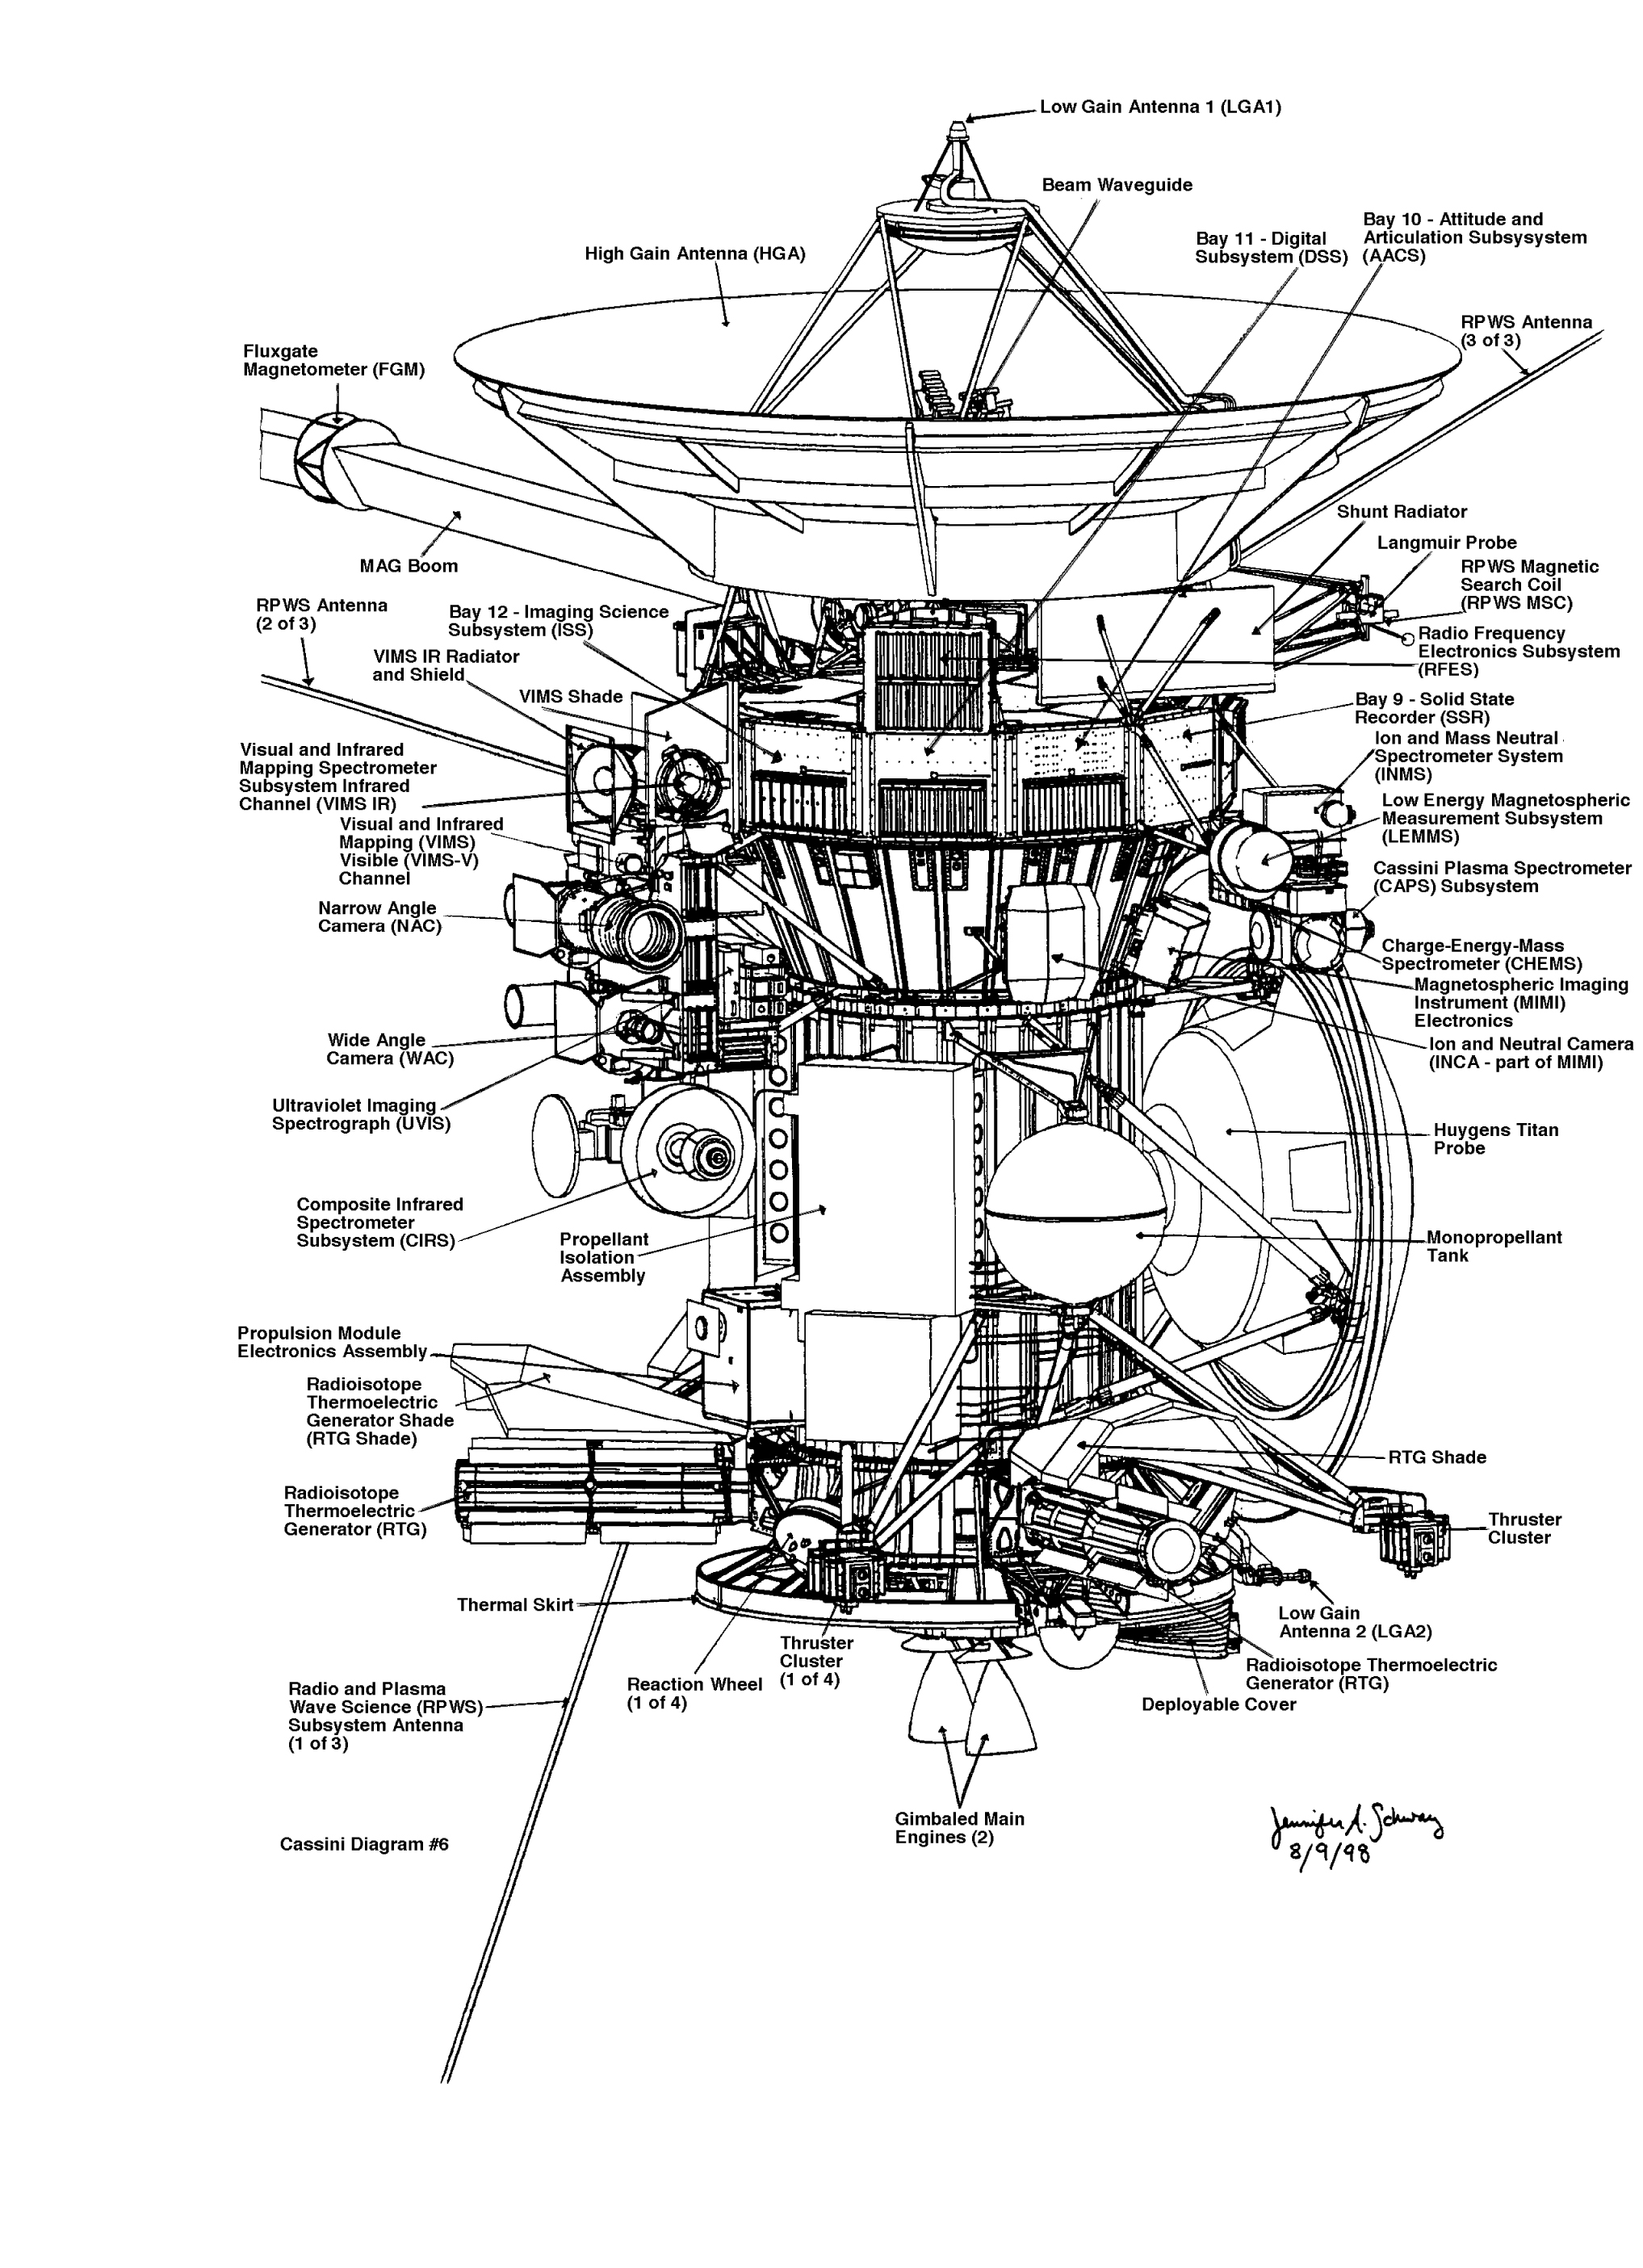 Cassini Huygens Diagram Pics About Space